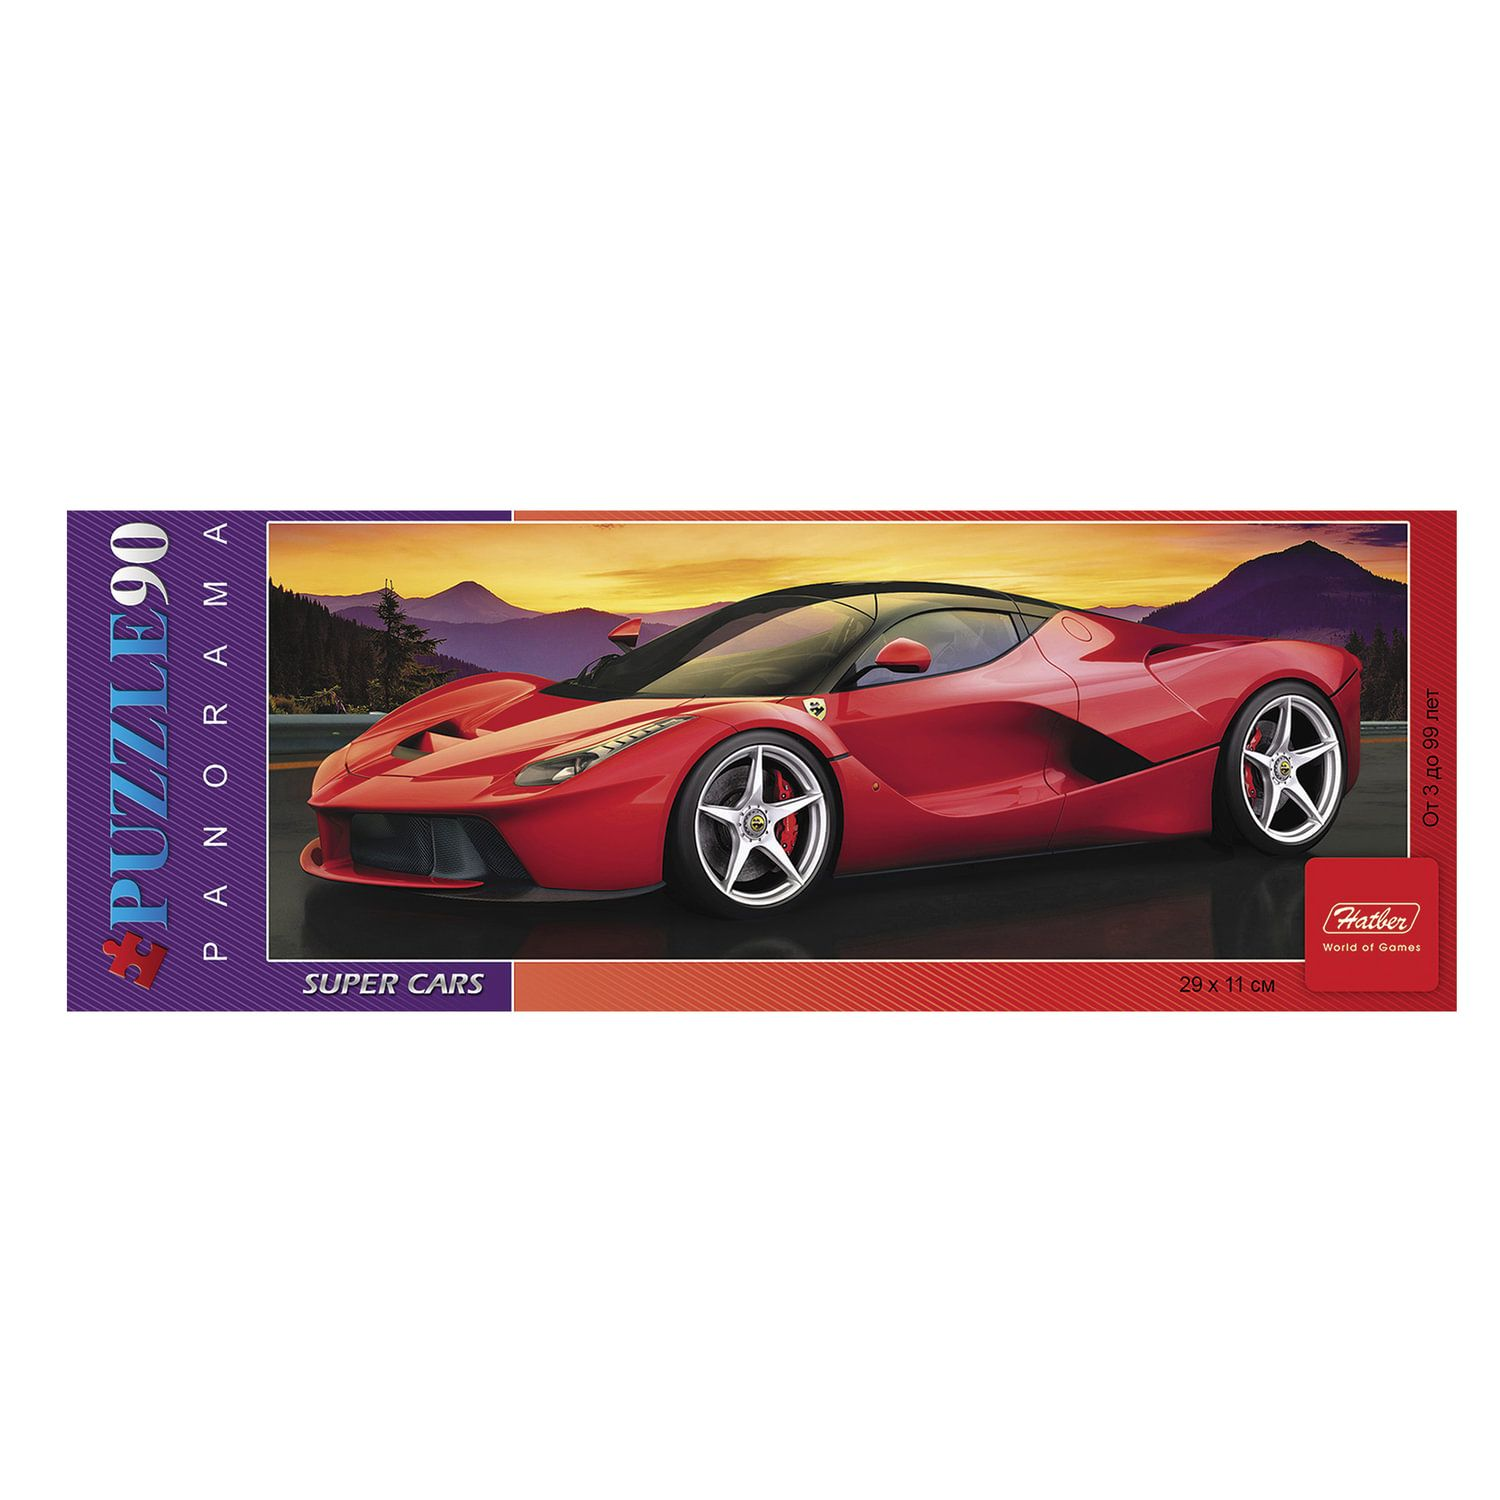 """Puzzle panorama, 90 elements, A4, """"Sports car"""", 290х110 mm"""